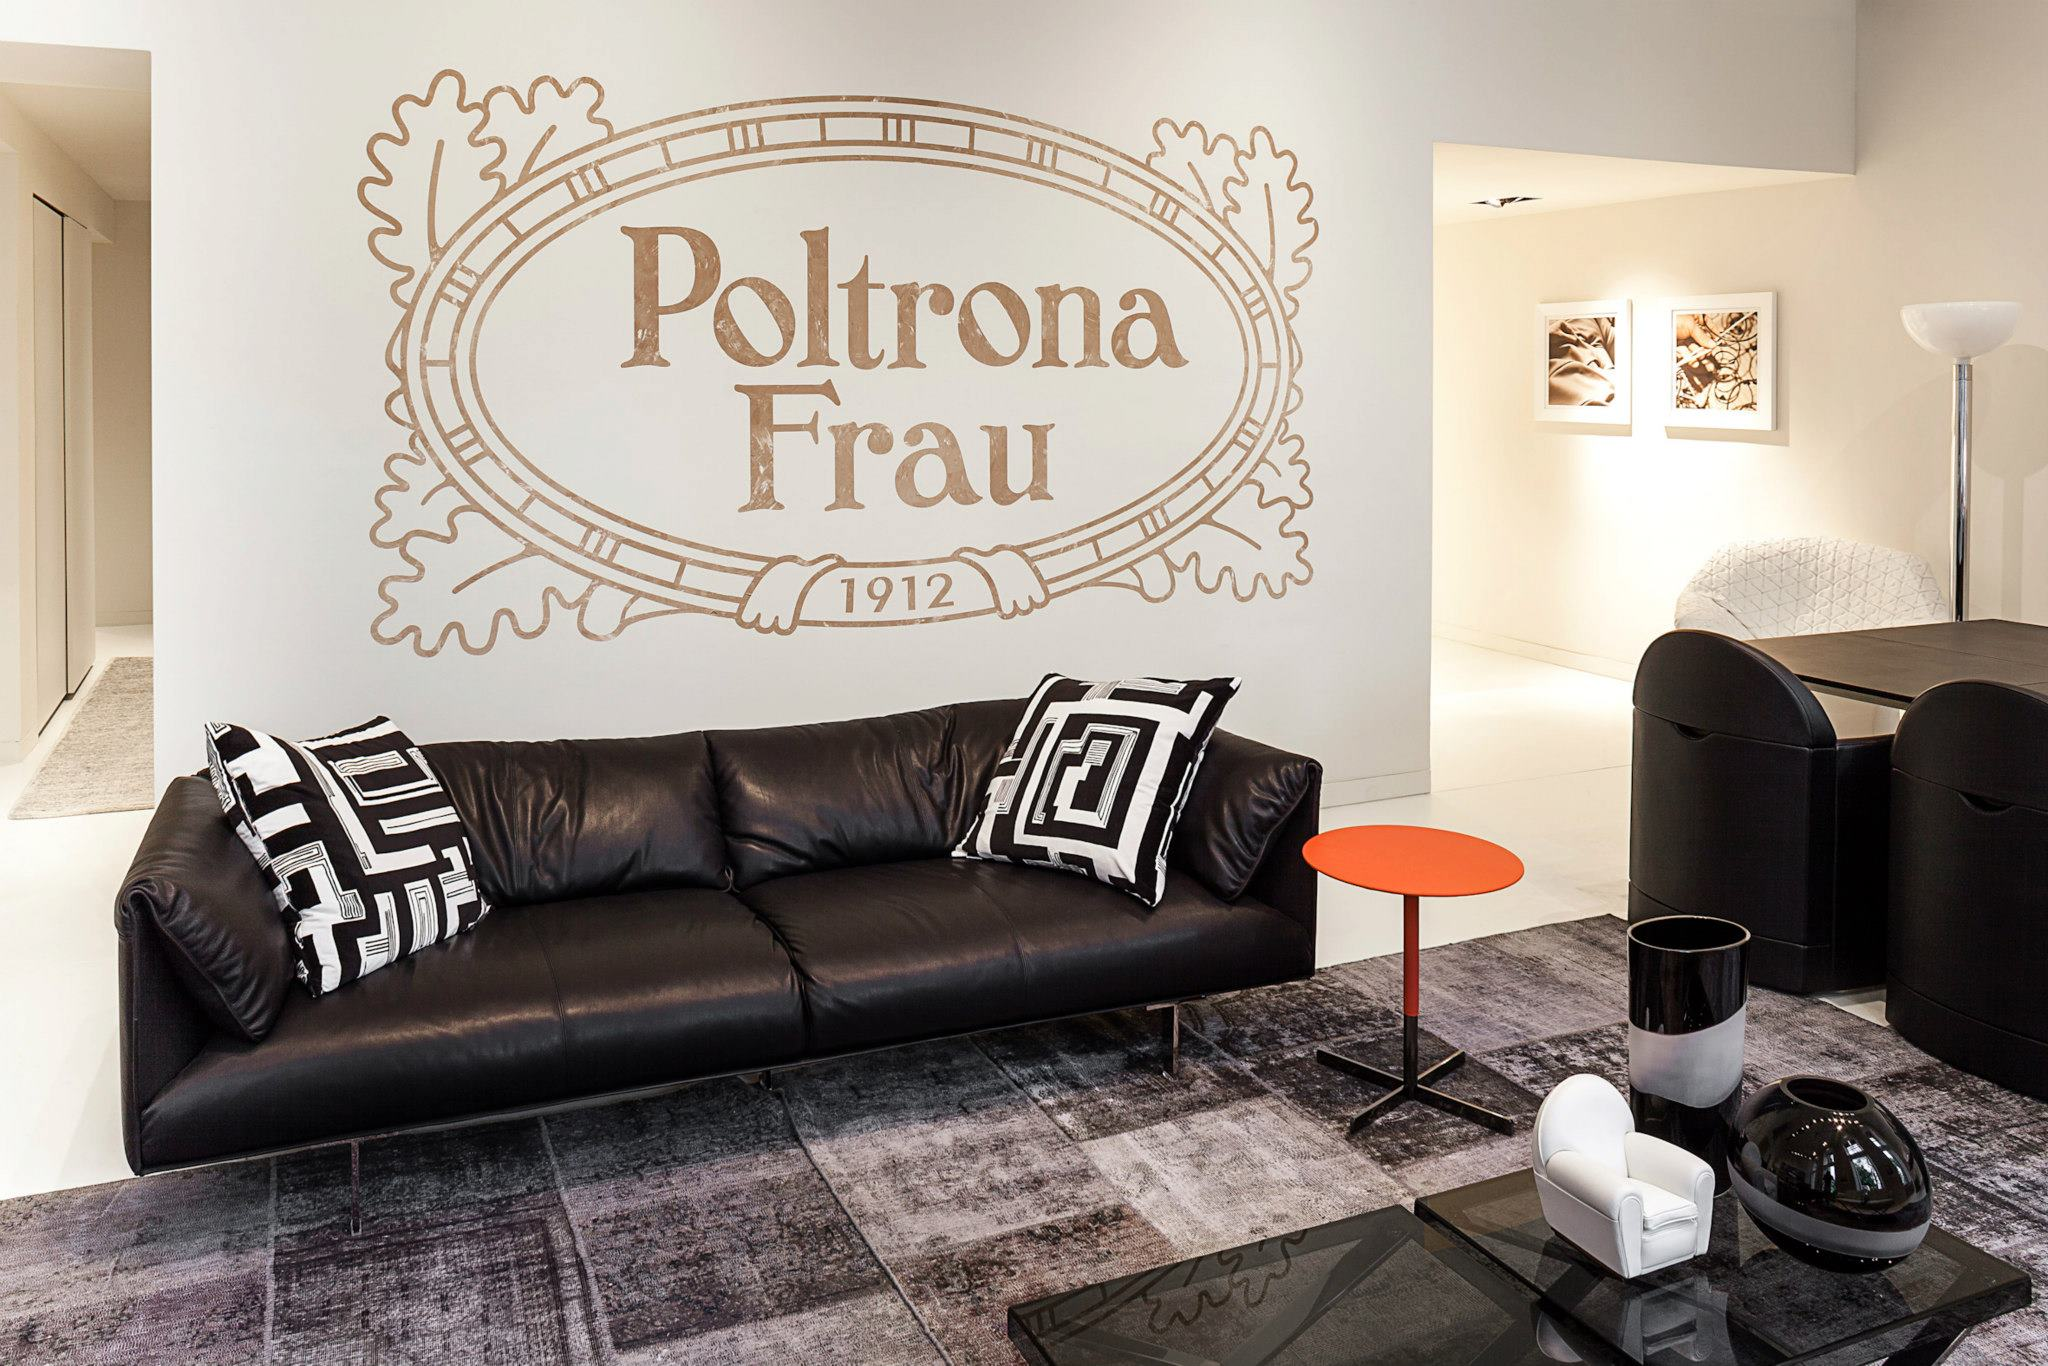 poltrona frau s first showroom in cologneluxury news best of luxury interviews event calendar. Black Bedroom Furniture Sets. Home Design Ideas